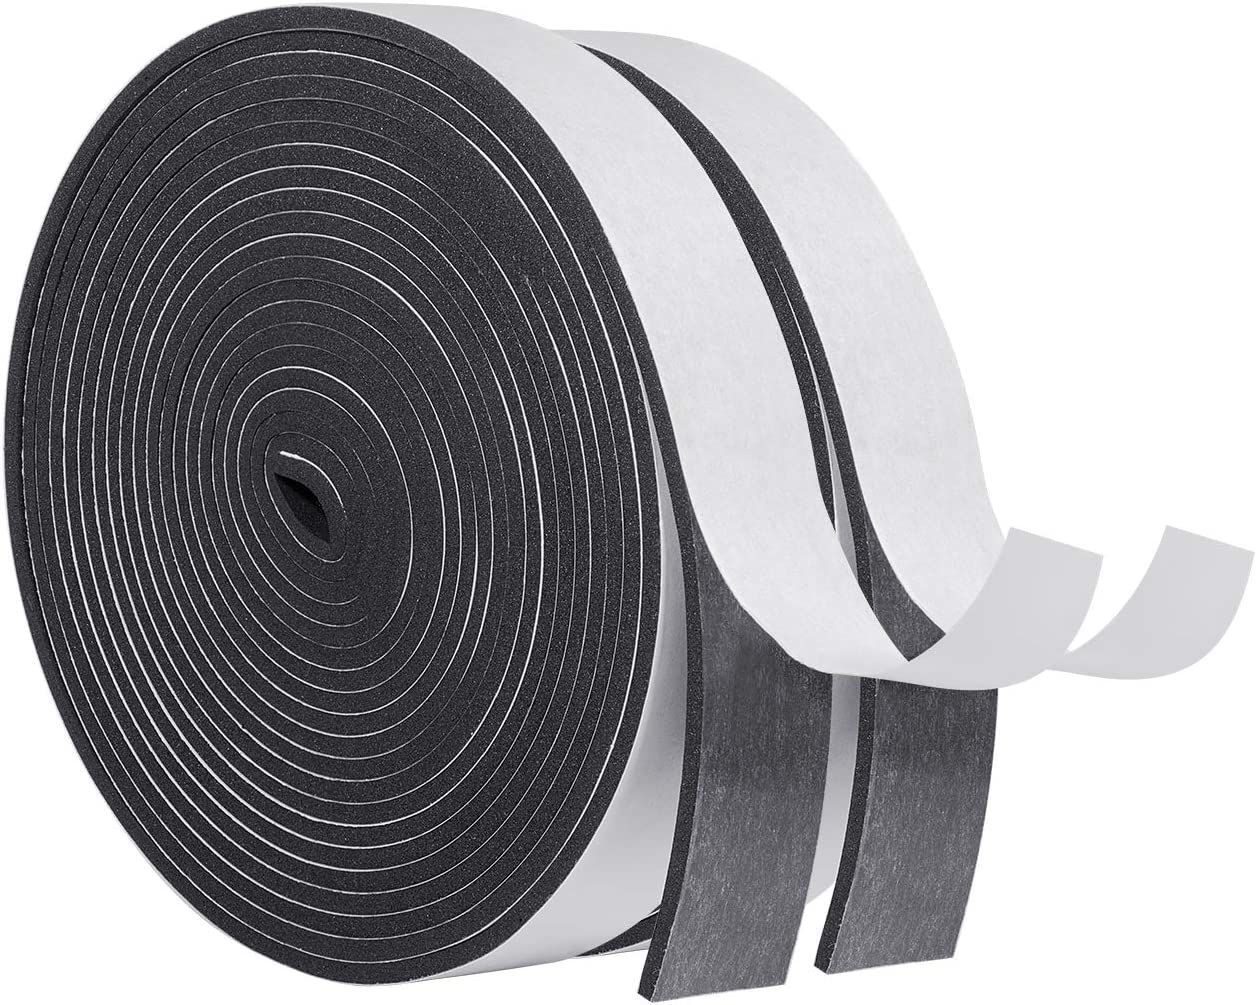 Foam Sealing Strip,5 Meters 14x12mm Large Self-Adhesive Windproof Dustproof Soundproof Anti-Collision Rubber Seal Sound Insulation Sealing Strip Anti Mosquito #4